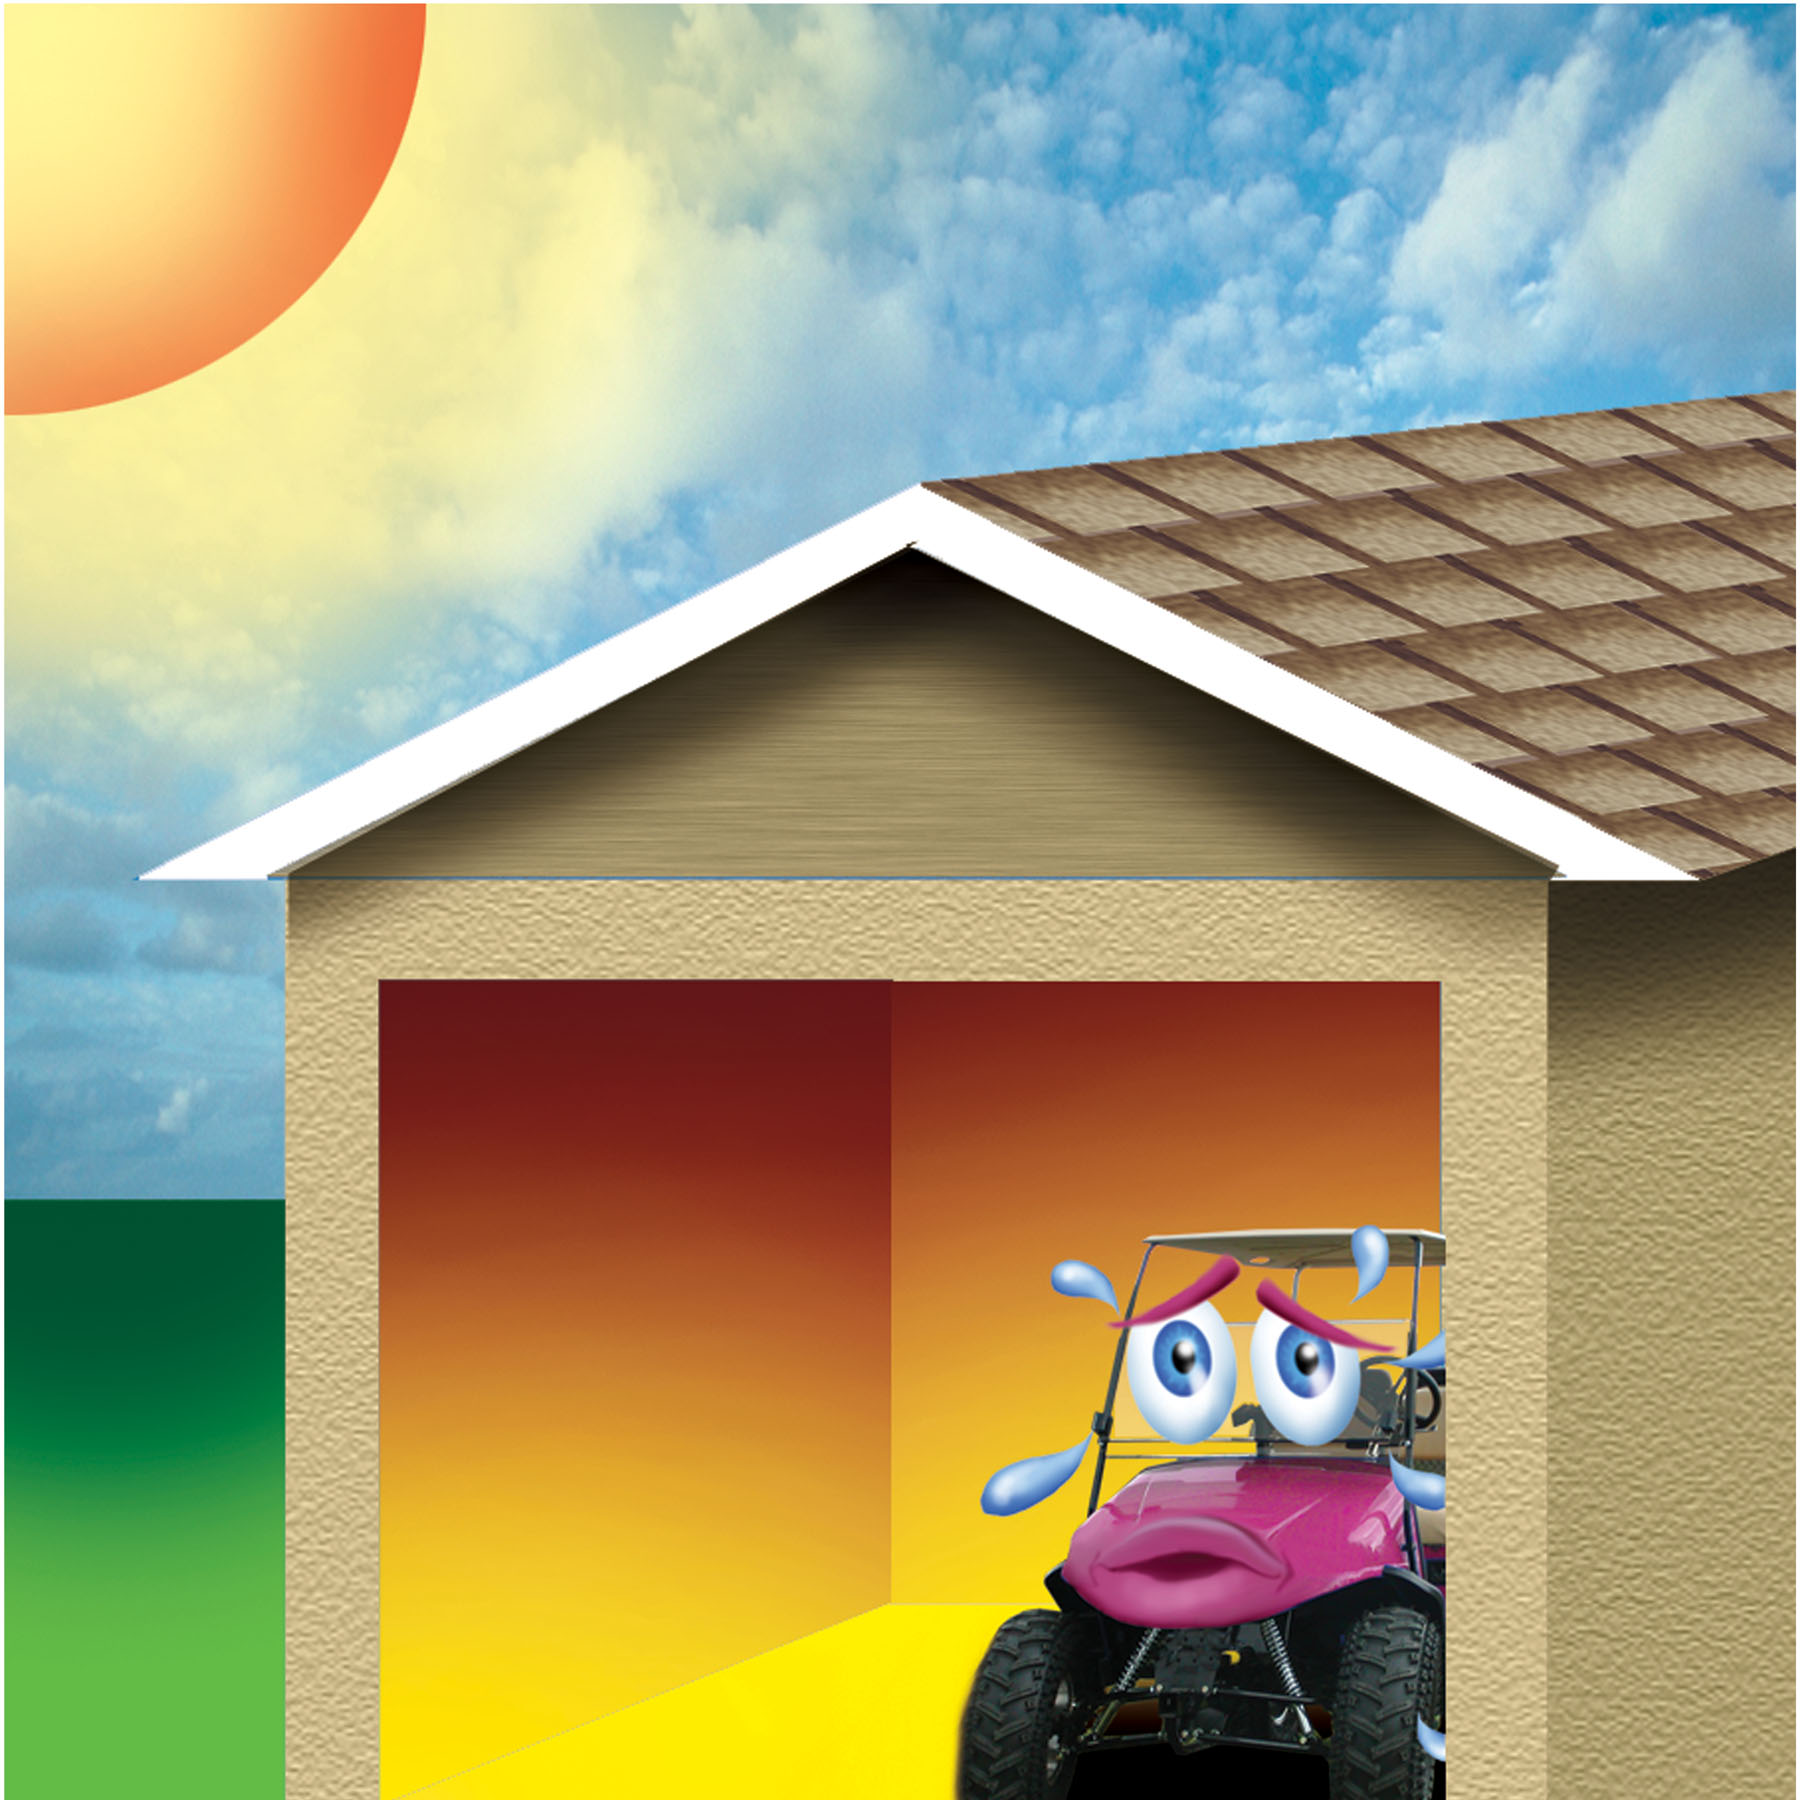 My Garage Is A Baking 110 Degrees – Help!